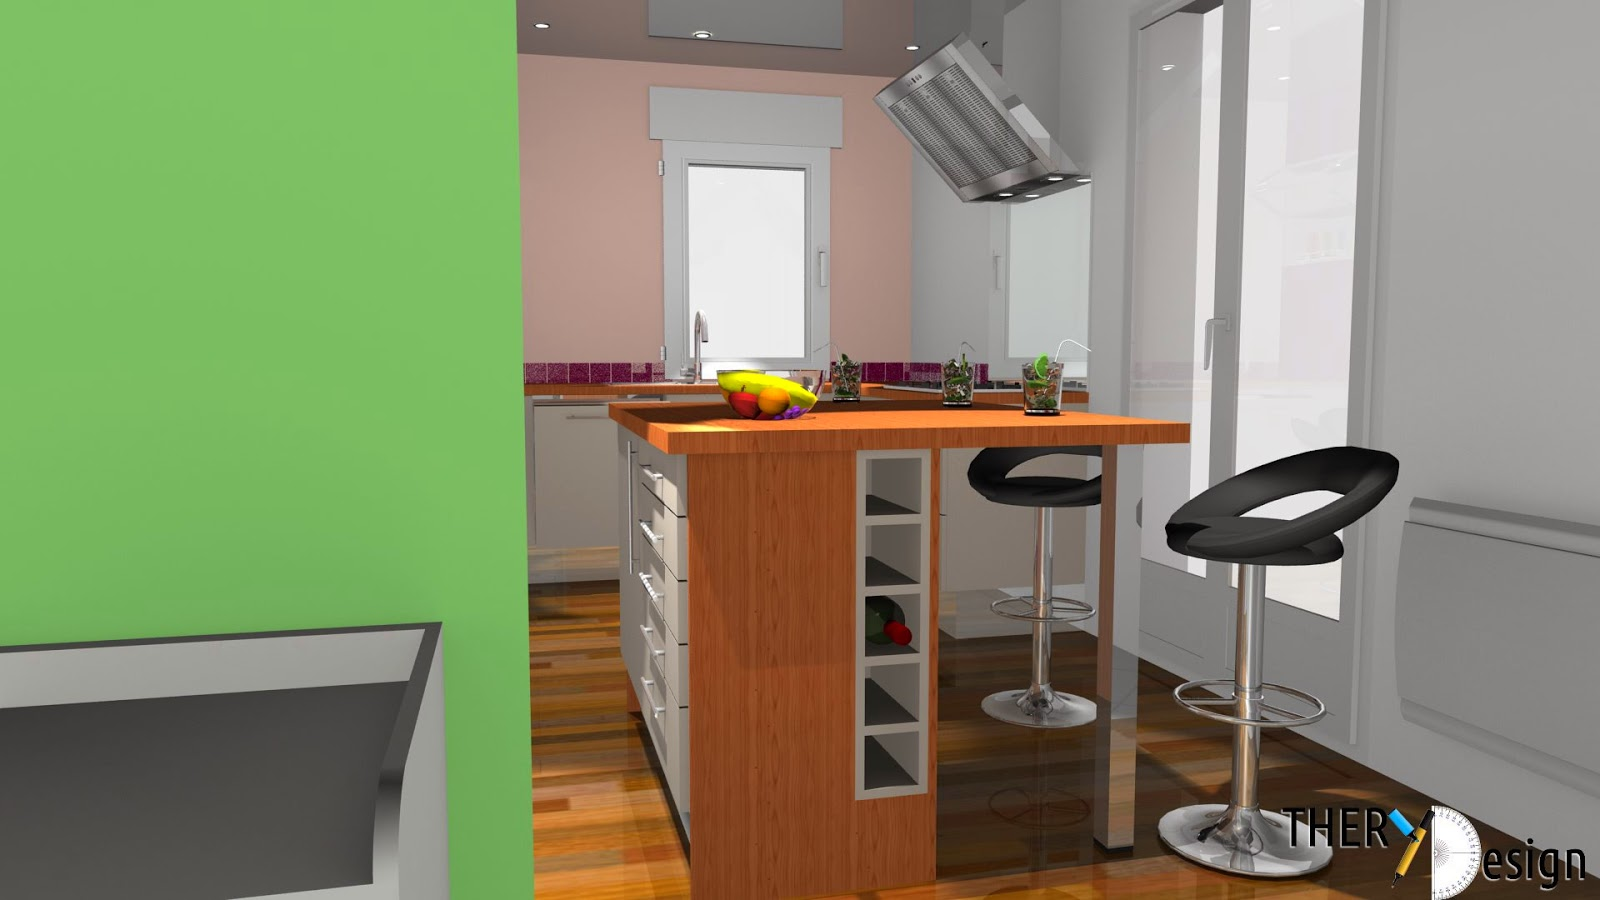 Cuisines et bain kitchens and bath sketchup vers pcon for Cuisine sketchup 8